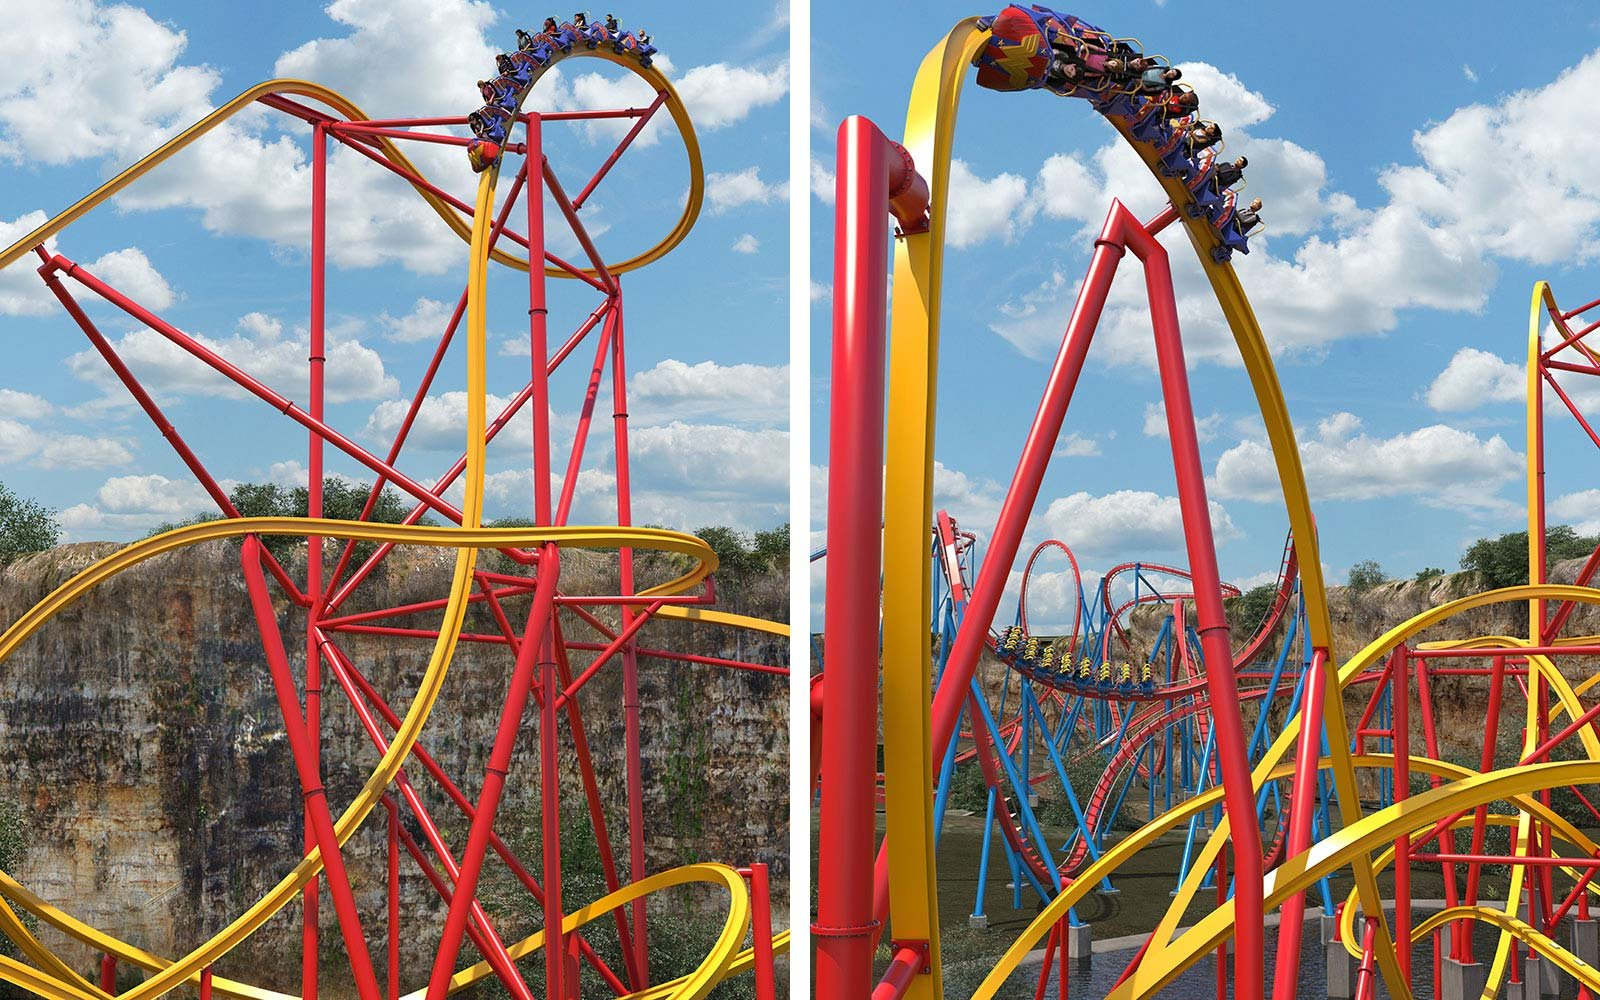 This Wonder Woman Roller Coaster Looks Completely Amazing